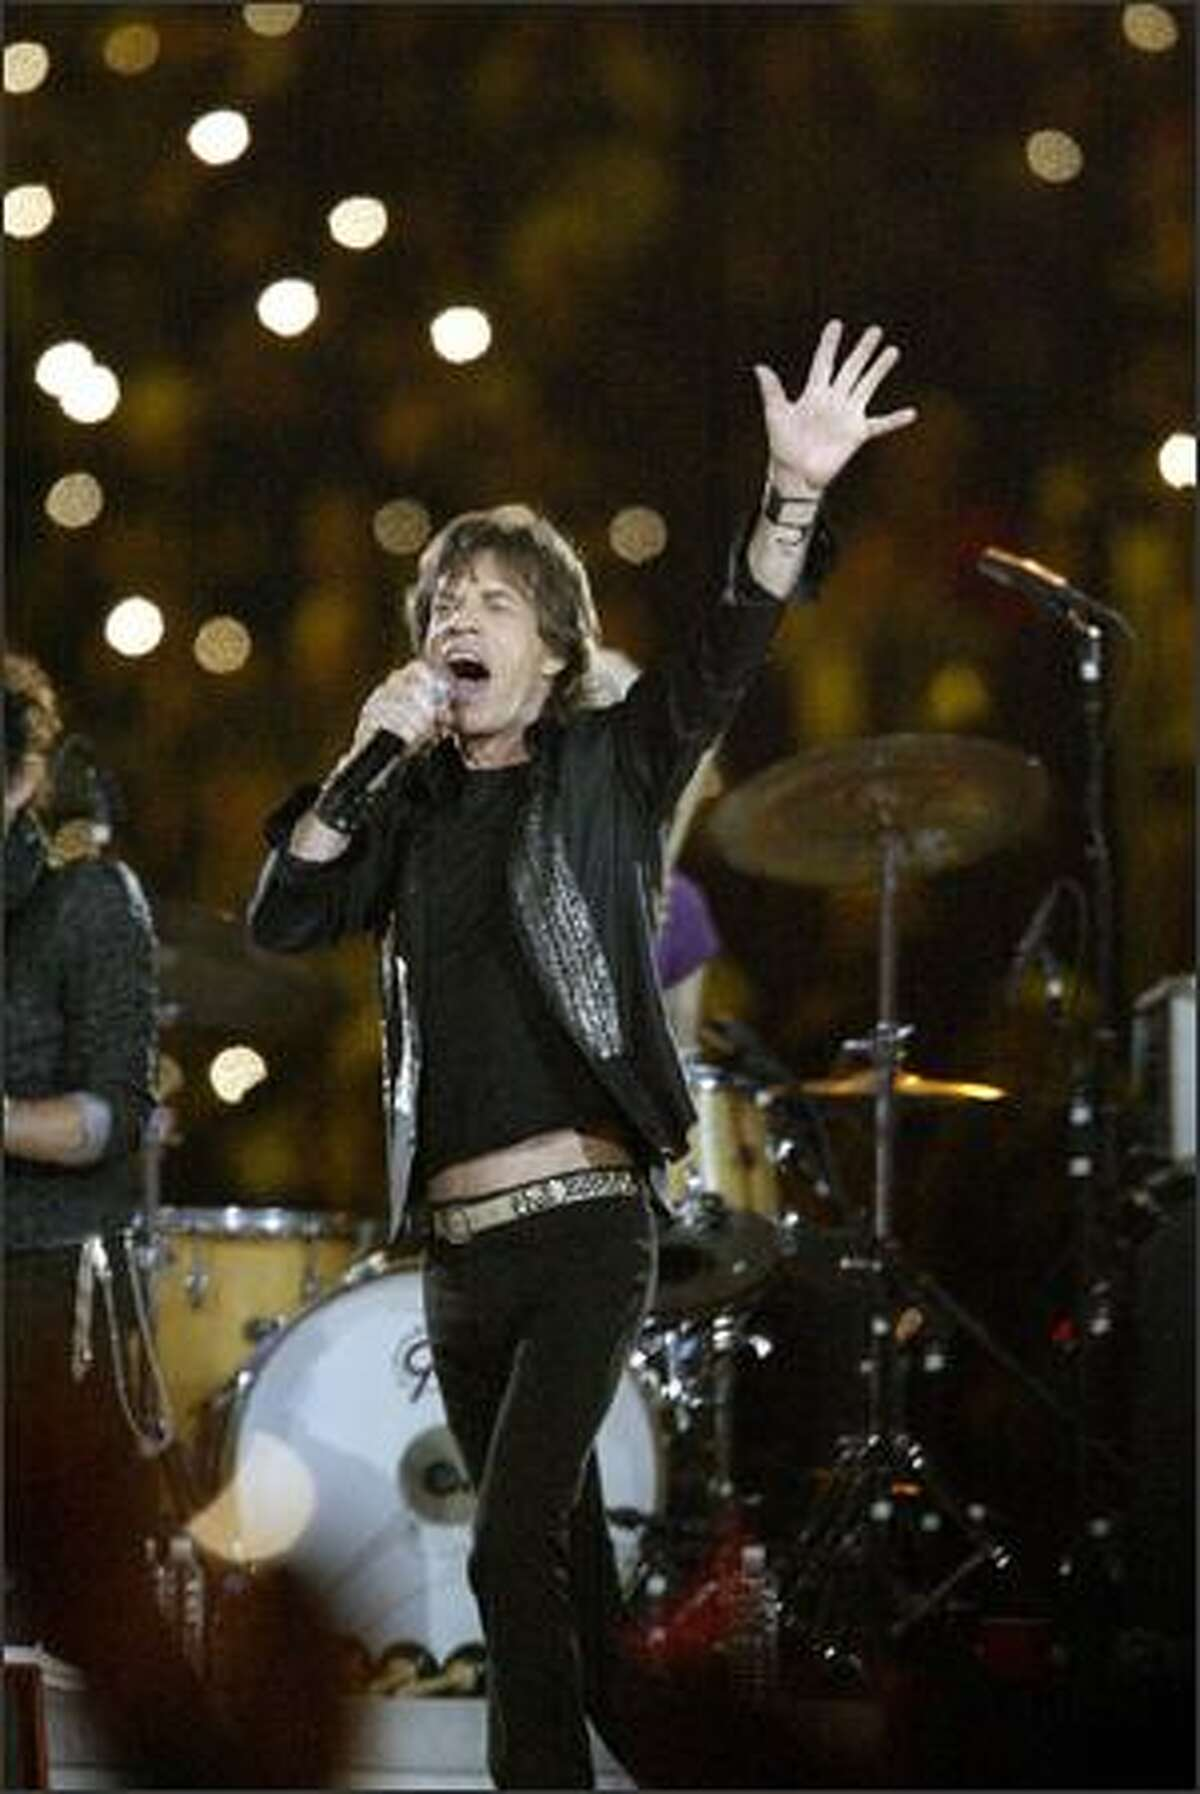 Mick Jagger performs at halftime with the Rolling Stones.